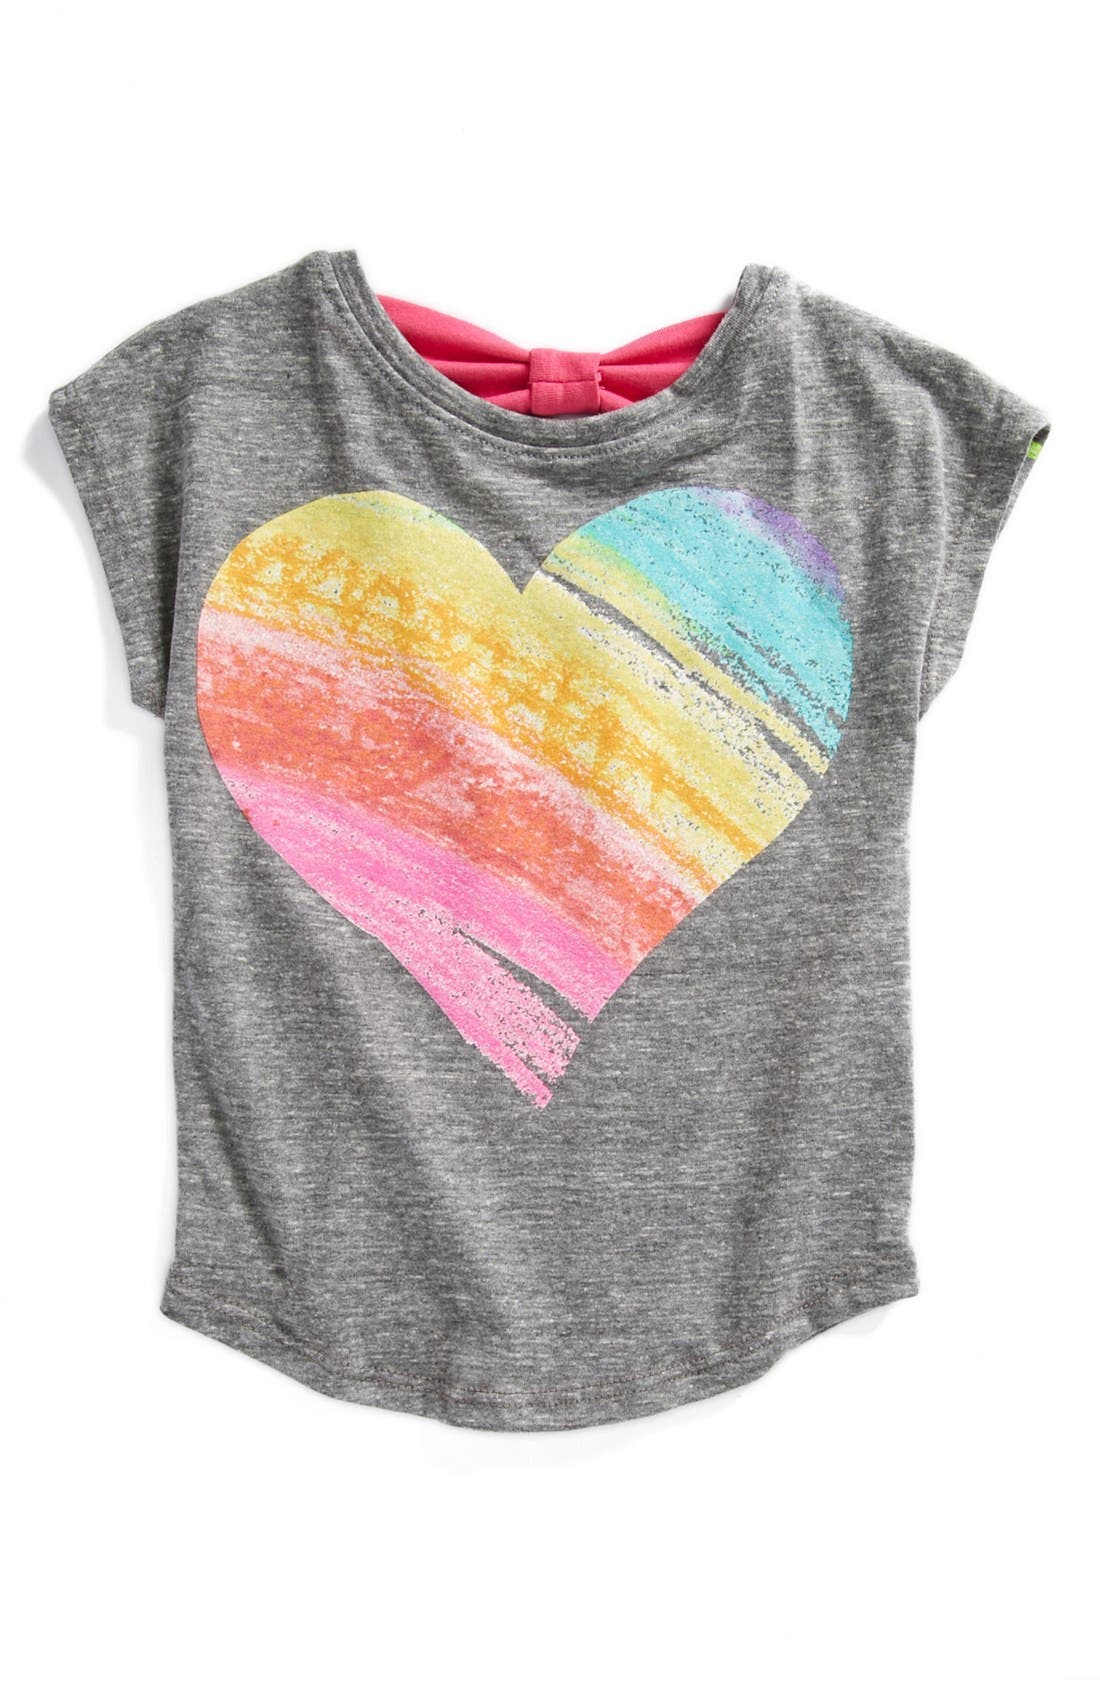 Alternate Image 1 Selected - Mighty Fine 'Crayon Heart' Tee (Toddler Girls)